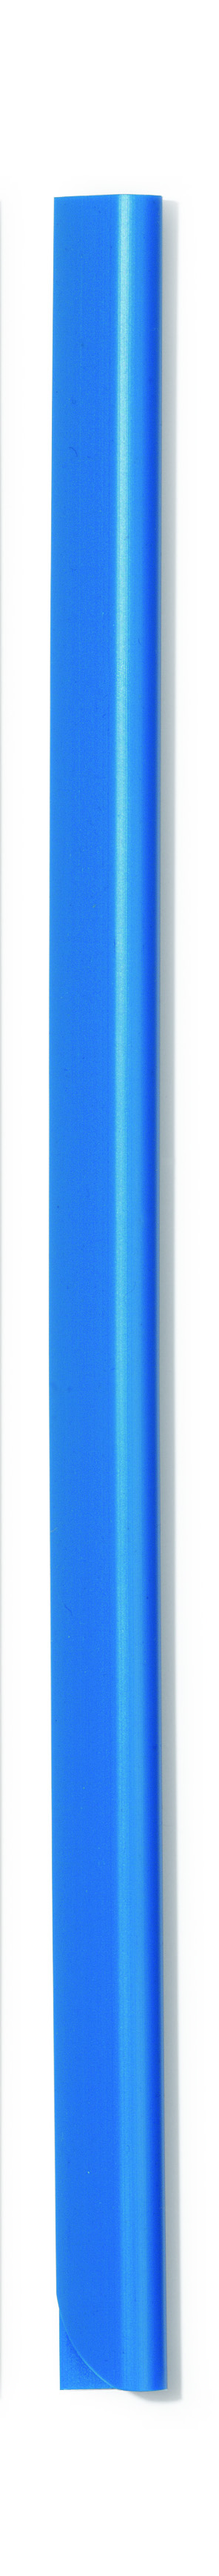 Compare prices for Durable A4 Blue 6mm Spine Bars Pack of 100 290106